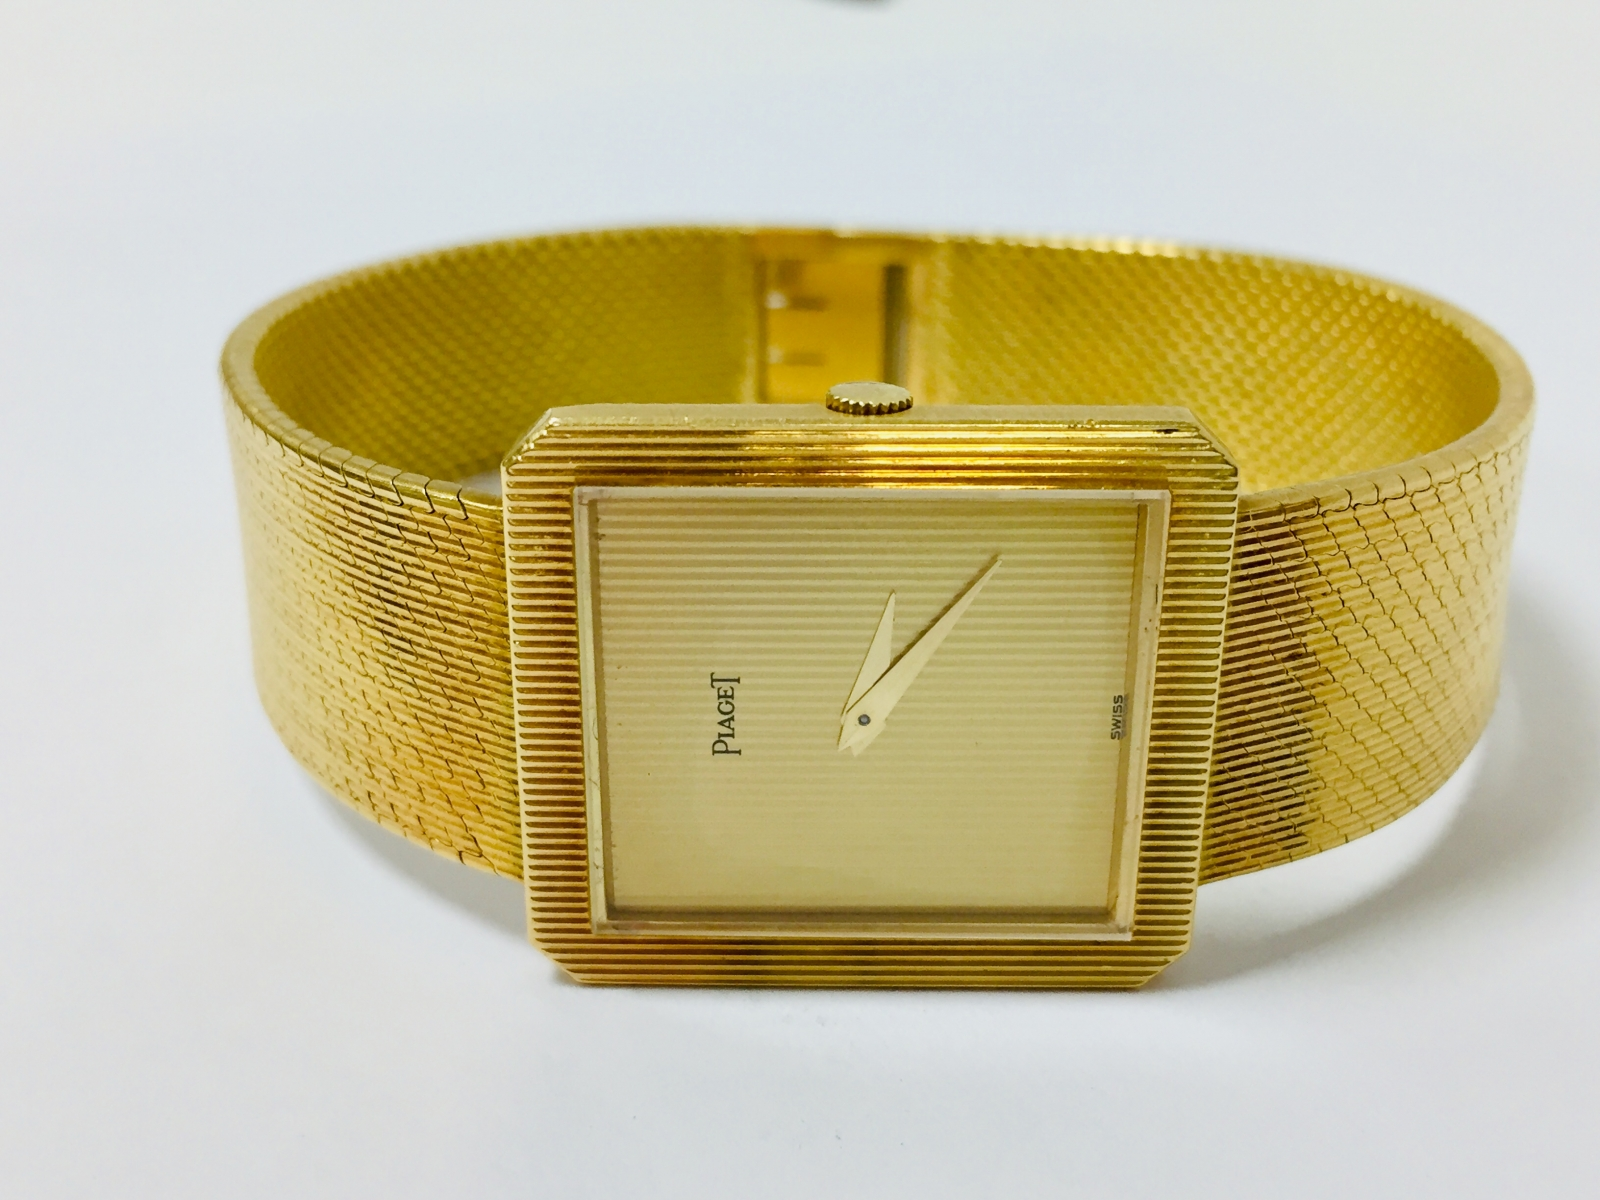 80 - PIAGET. Montre en or jaune 18K 750°. Adjugé 2000€